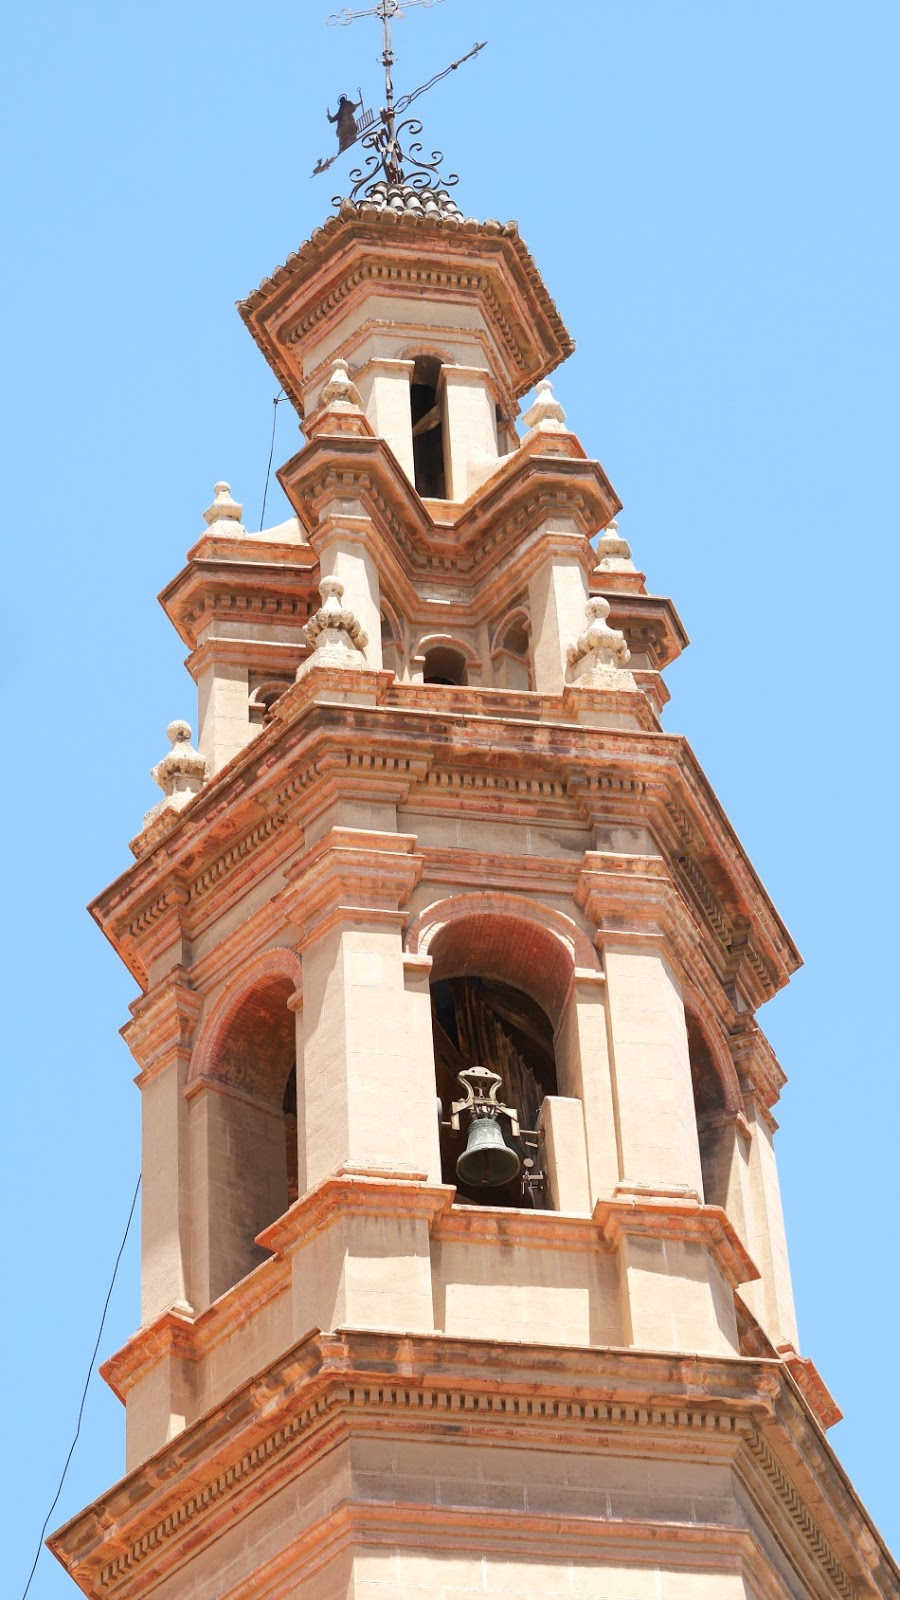 Church bell tower in Valencia Spain